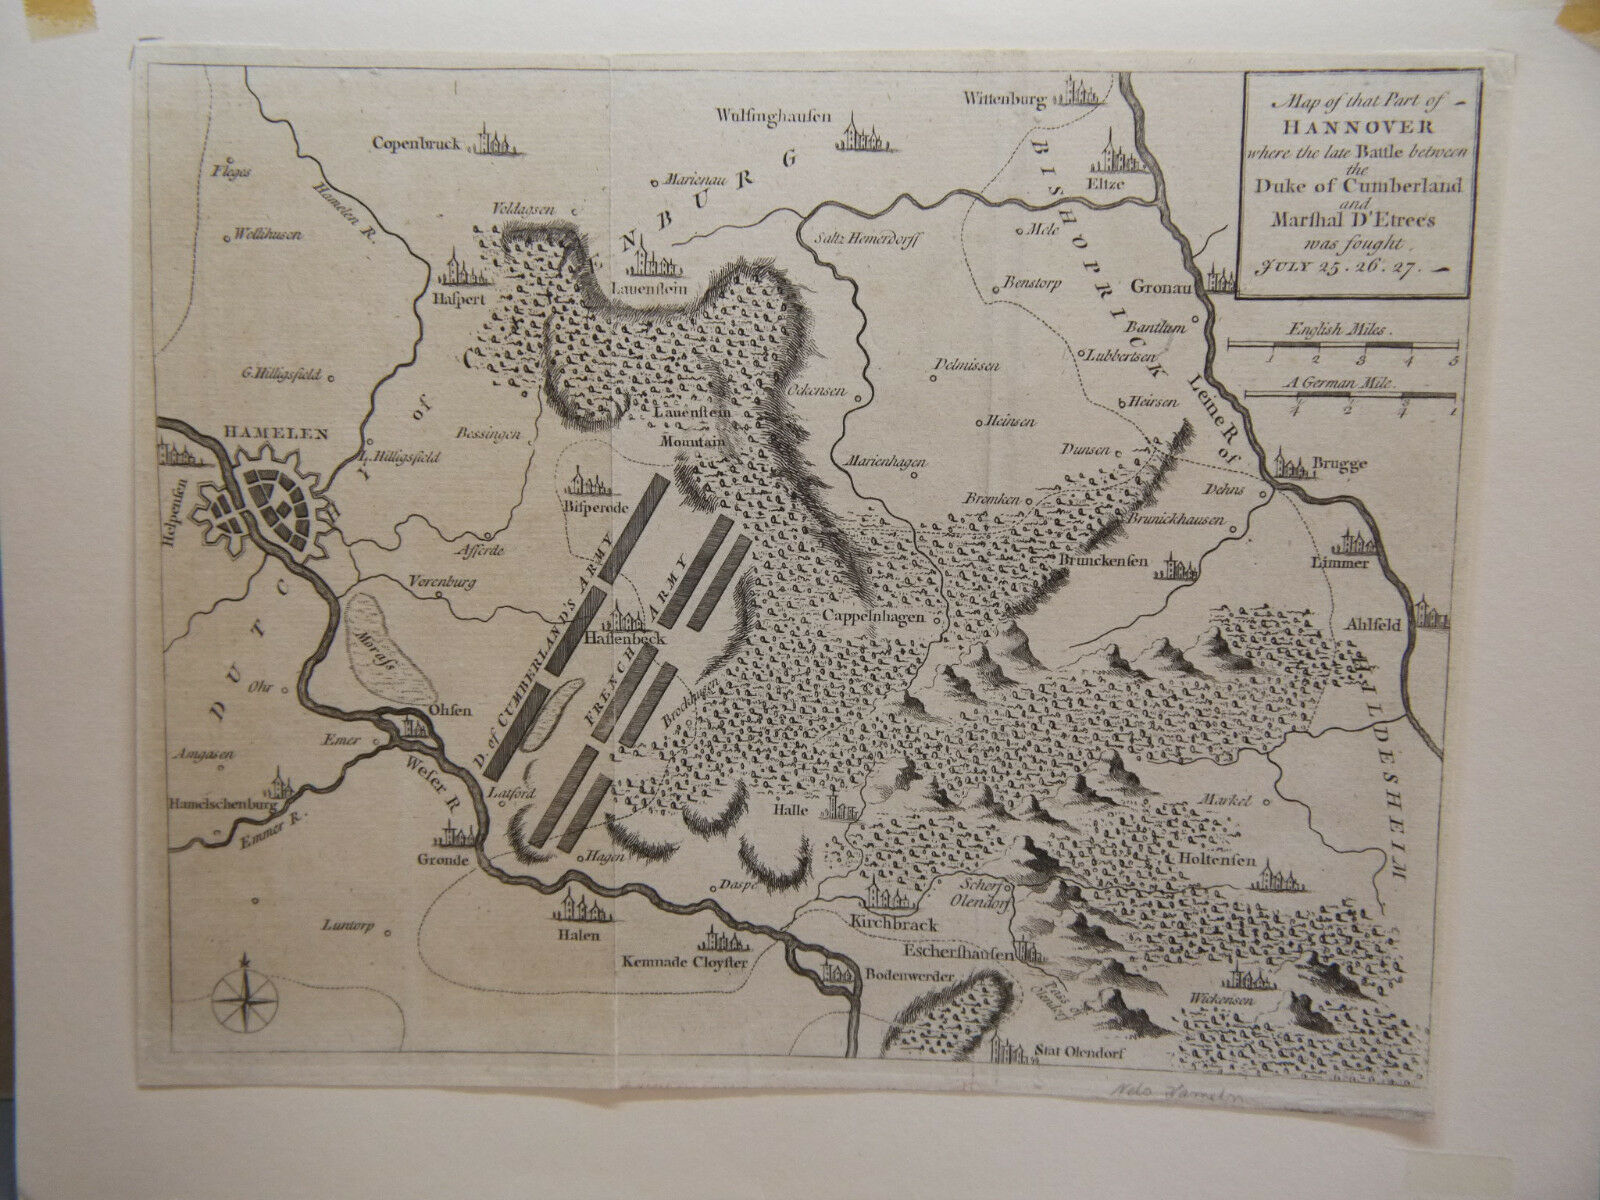 Alter Kupferstich  Karte  Map of that Part of Hannover ,wohl 1760